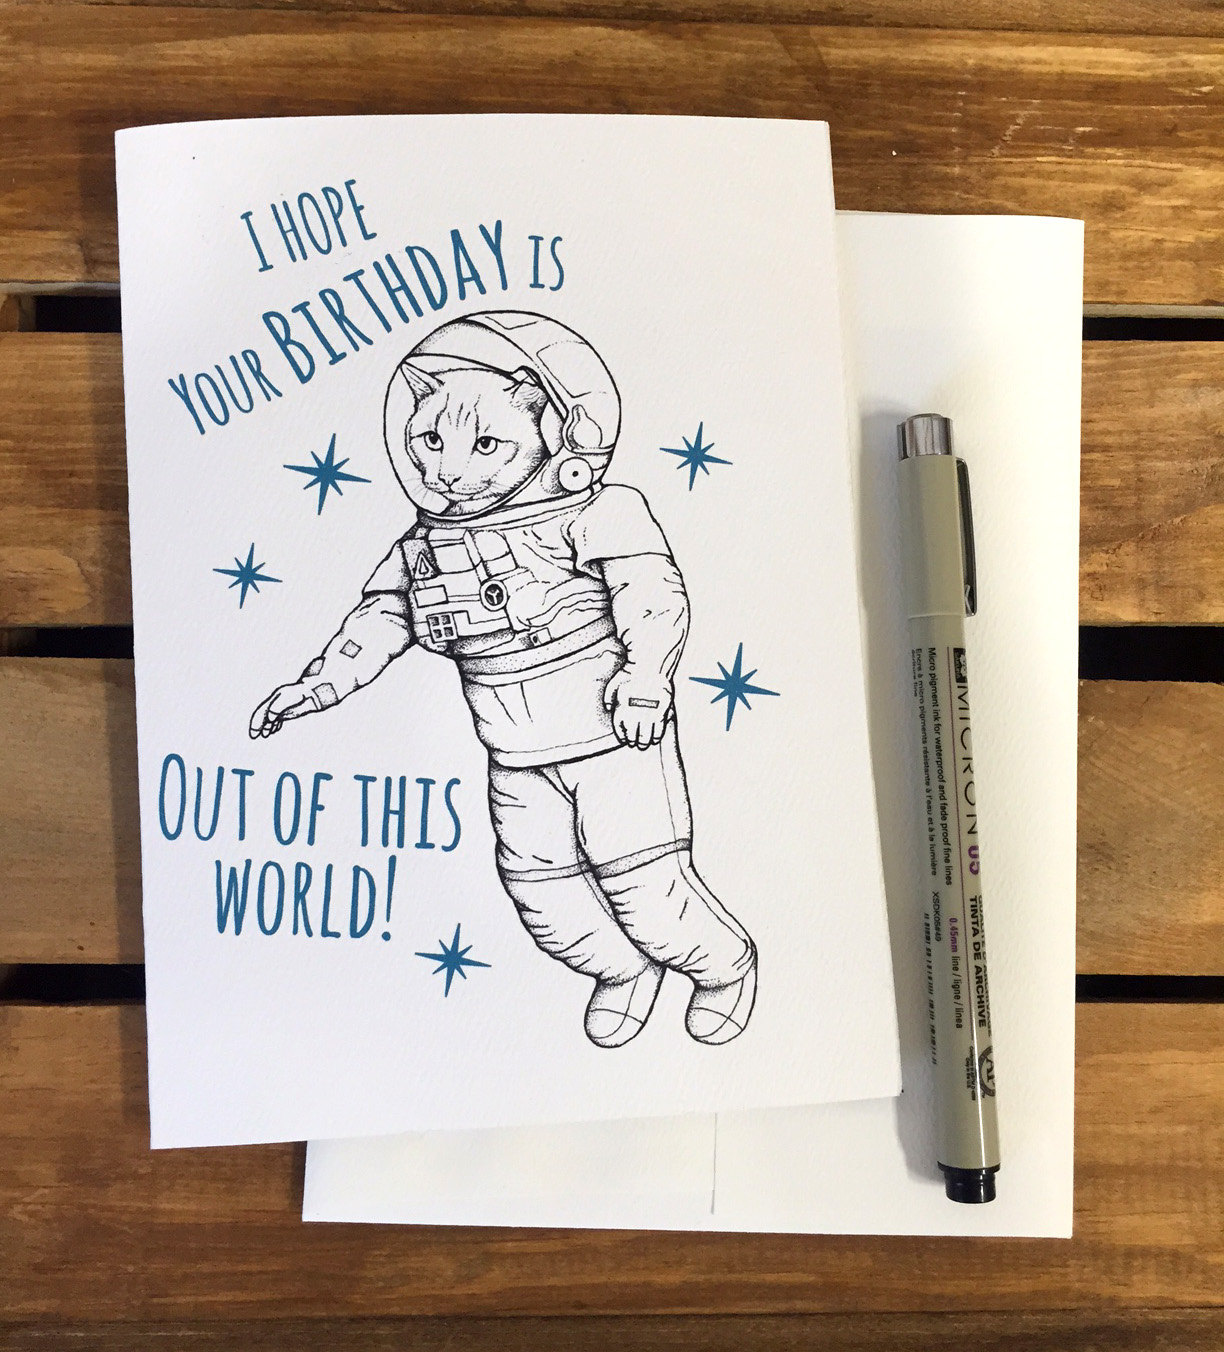 drawing ideas for a birthday card ; space-cat-birthday-card-funny-birthday-card-boyfriend-birthday-card-girlfriend-birthday-card-cute-design-unique-birthday-cards